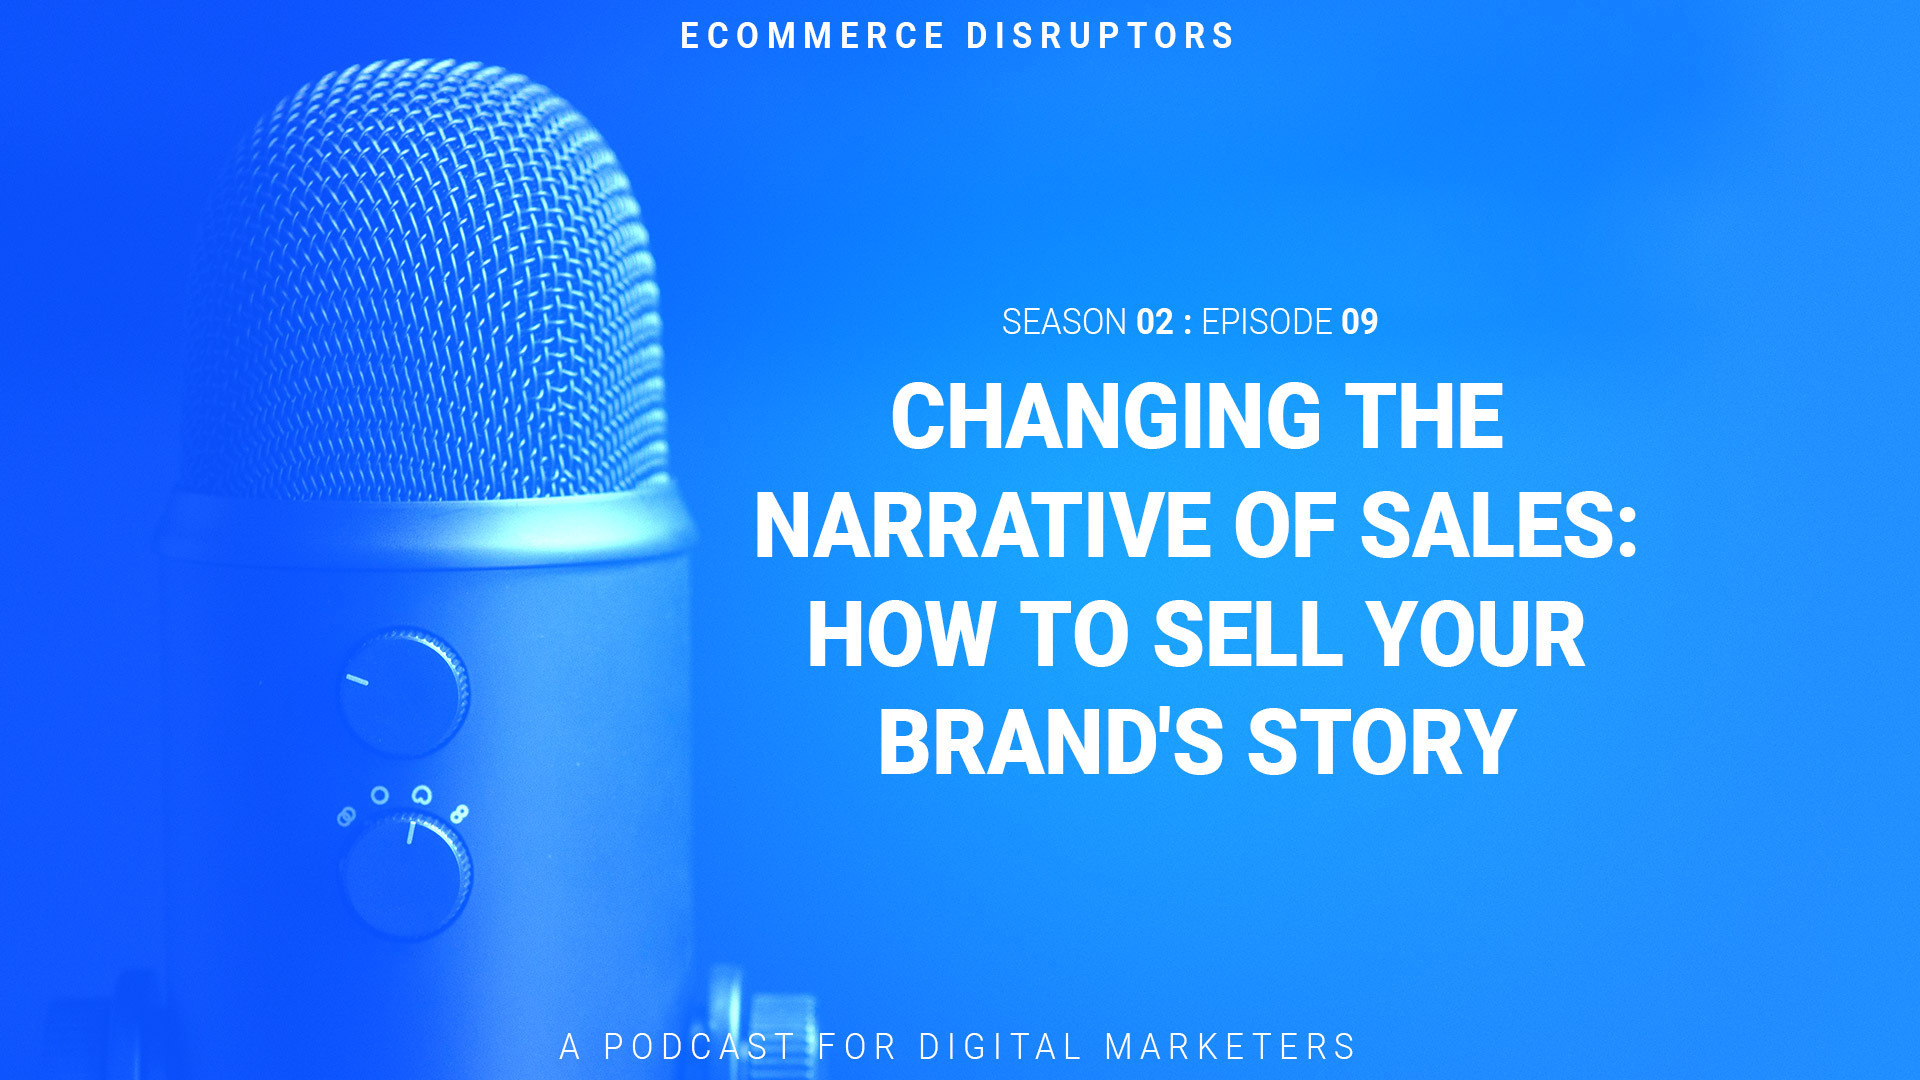 Changing the Narrative of Sales: How to Sell Your Brand's Story